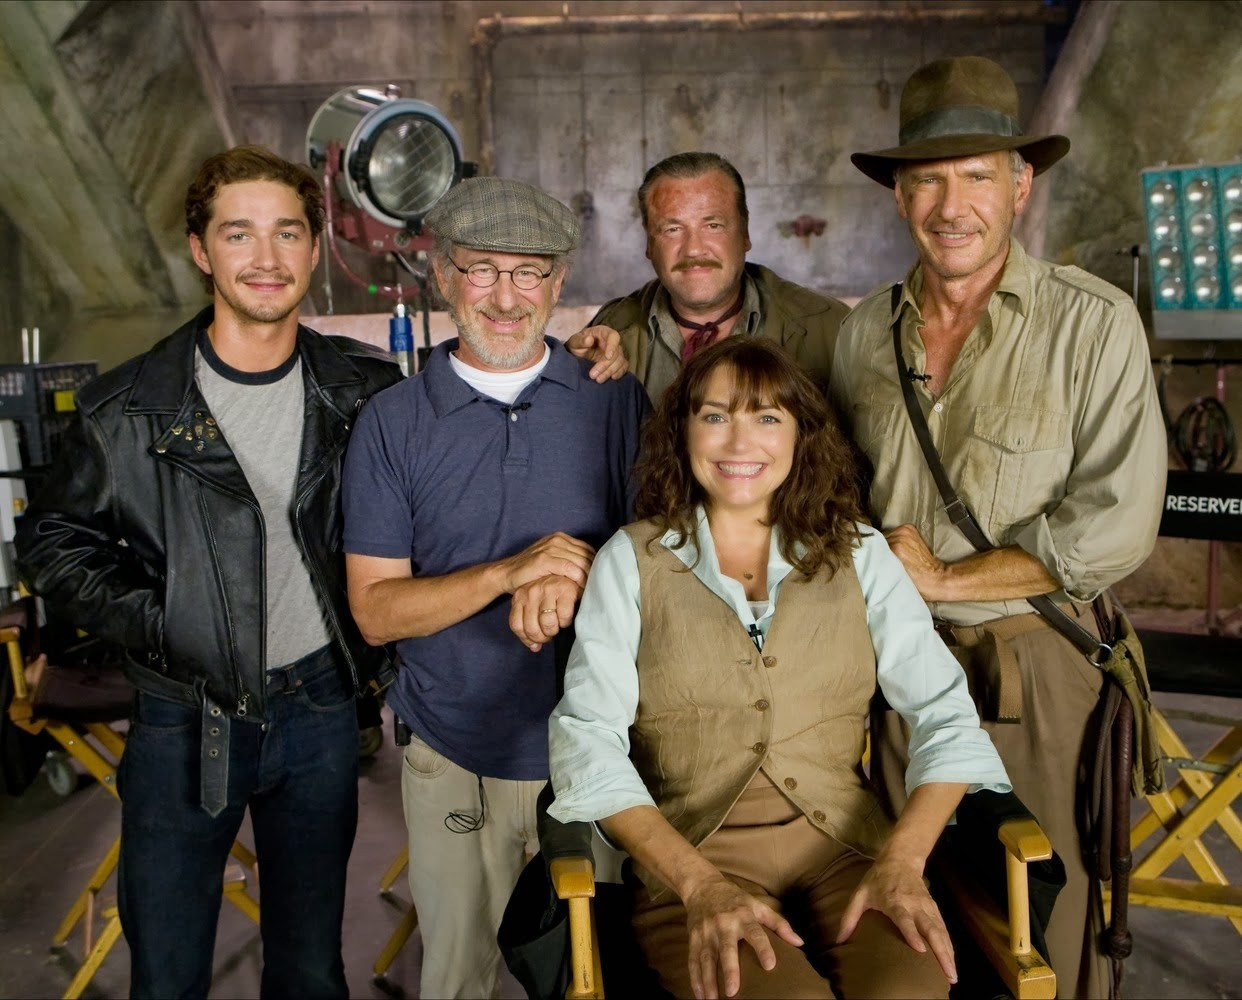 Indiana Jones and the Kingdom of the Crystal Skull Behind the Scenes Photos & Tech Specs